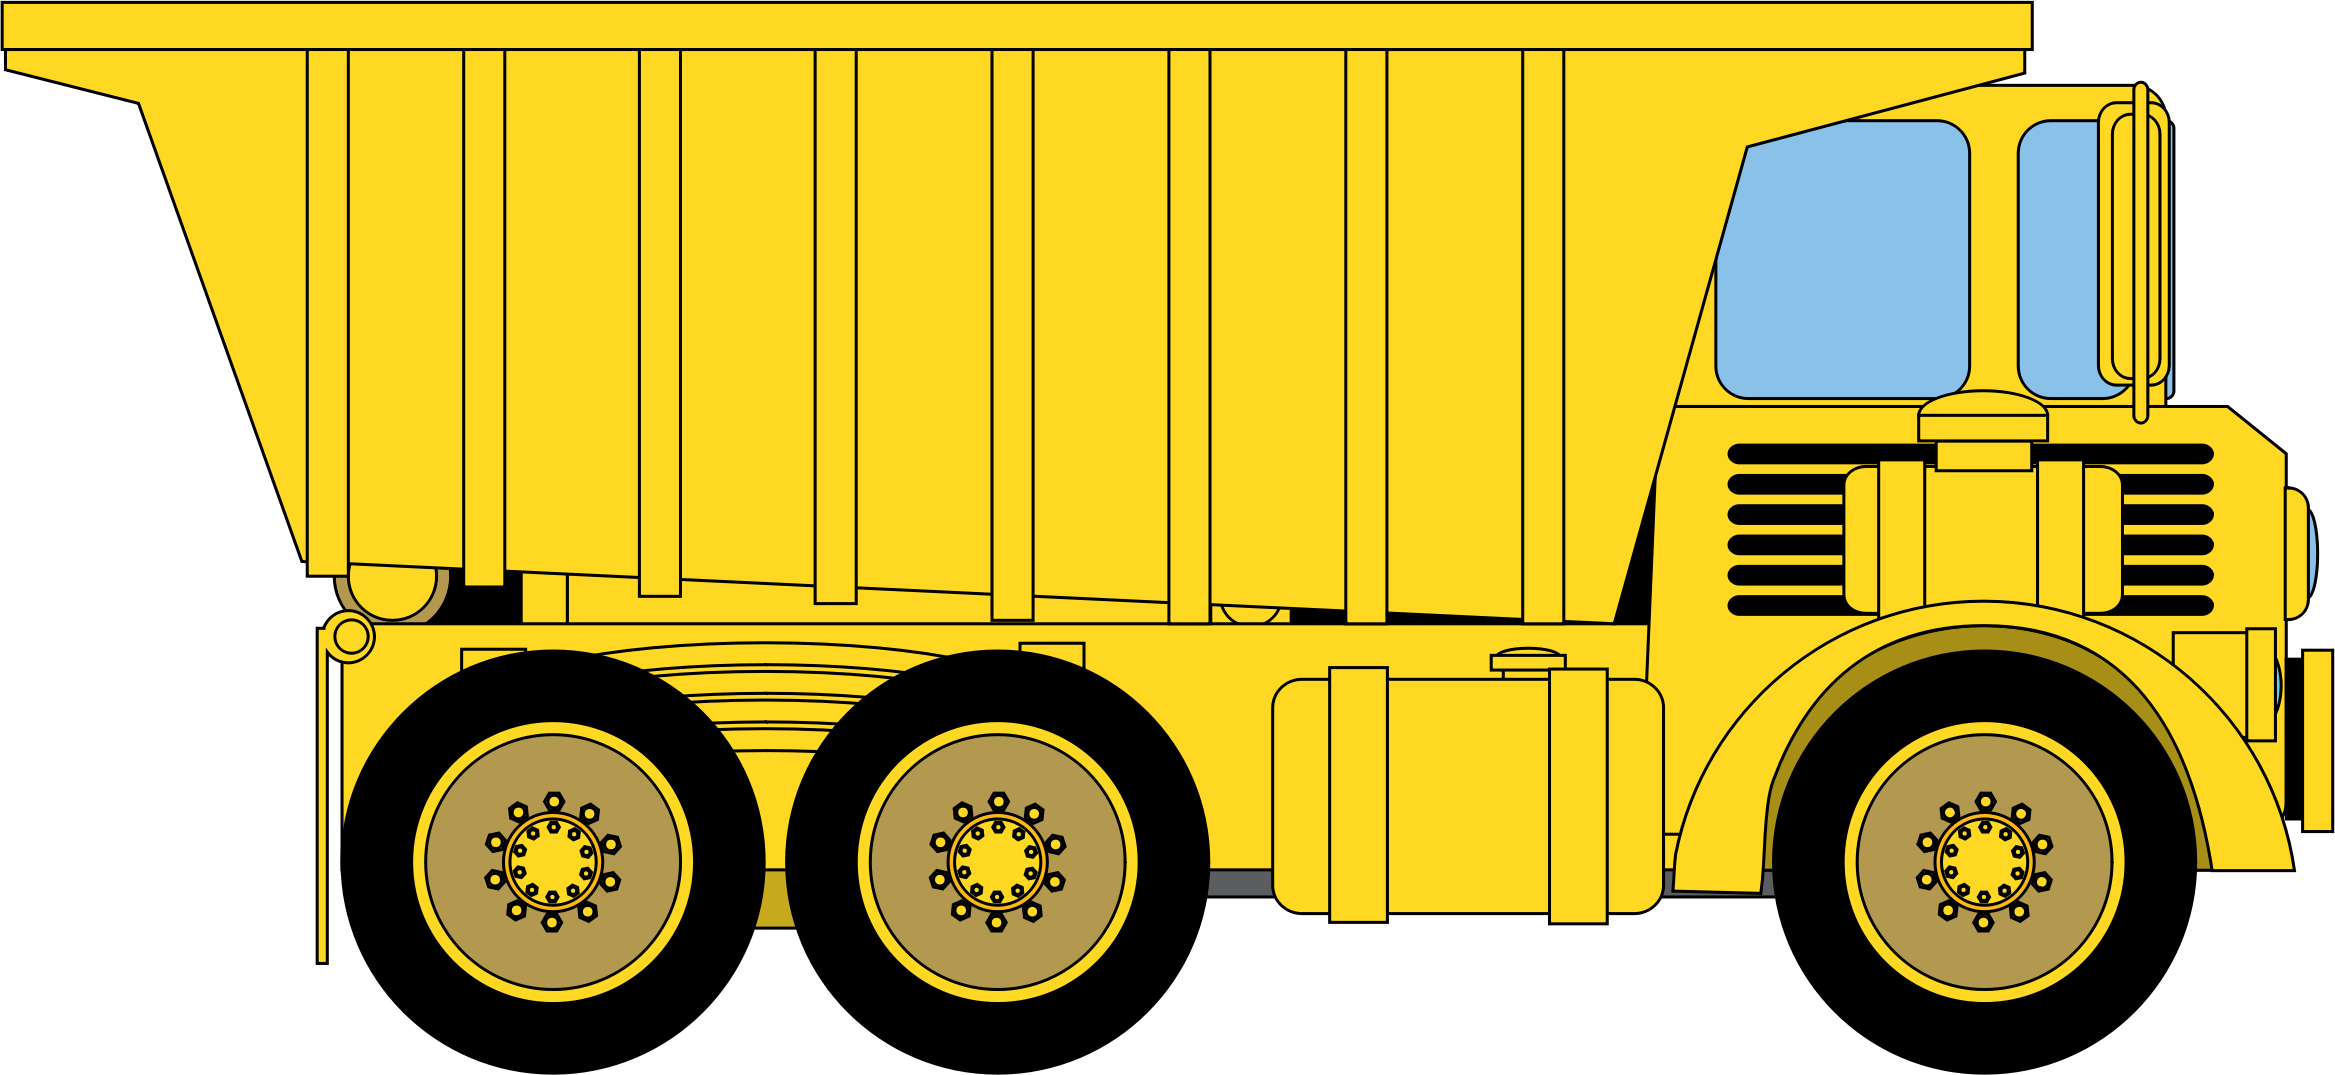 Vehicle pencil and in. Clipart cat dump truck